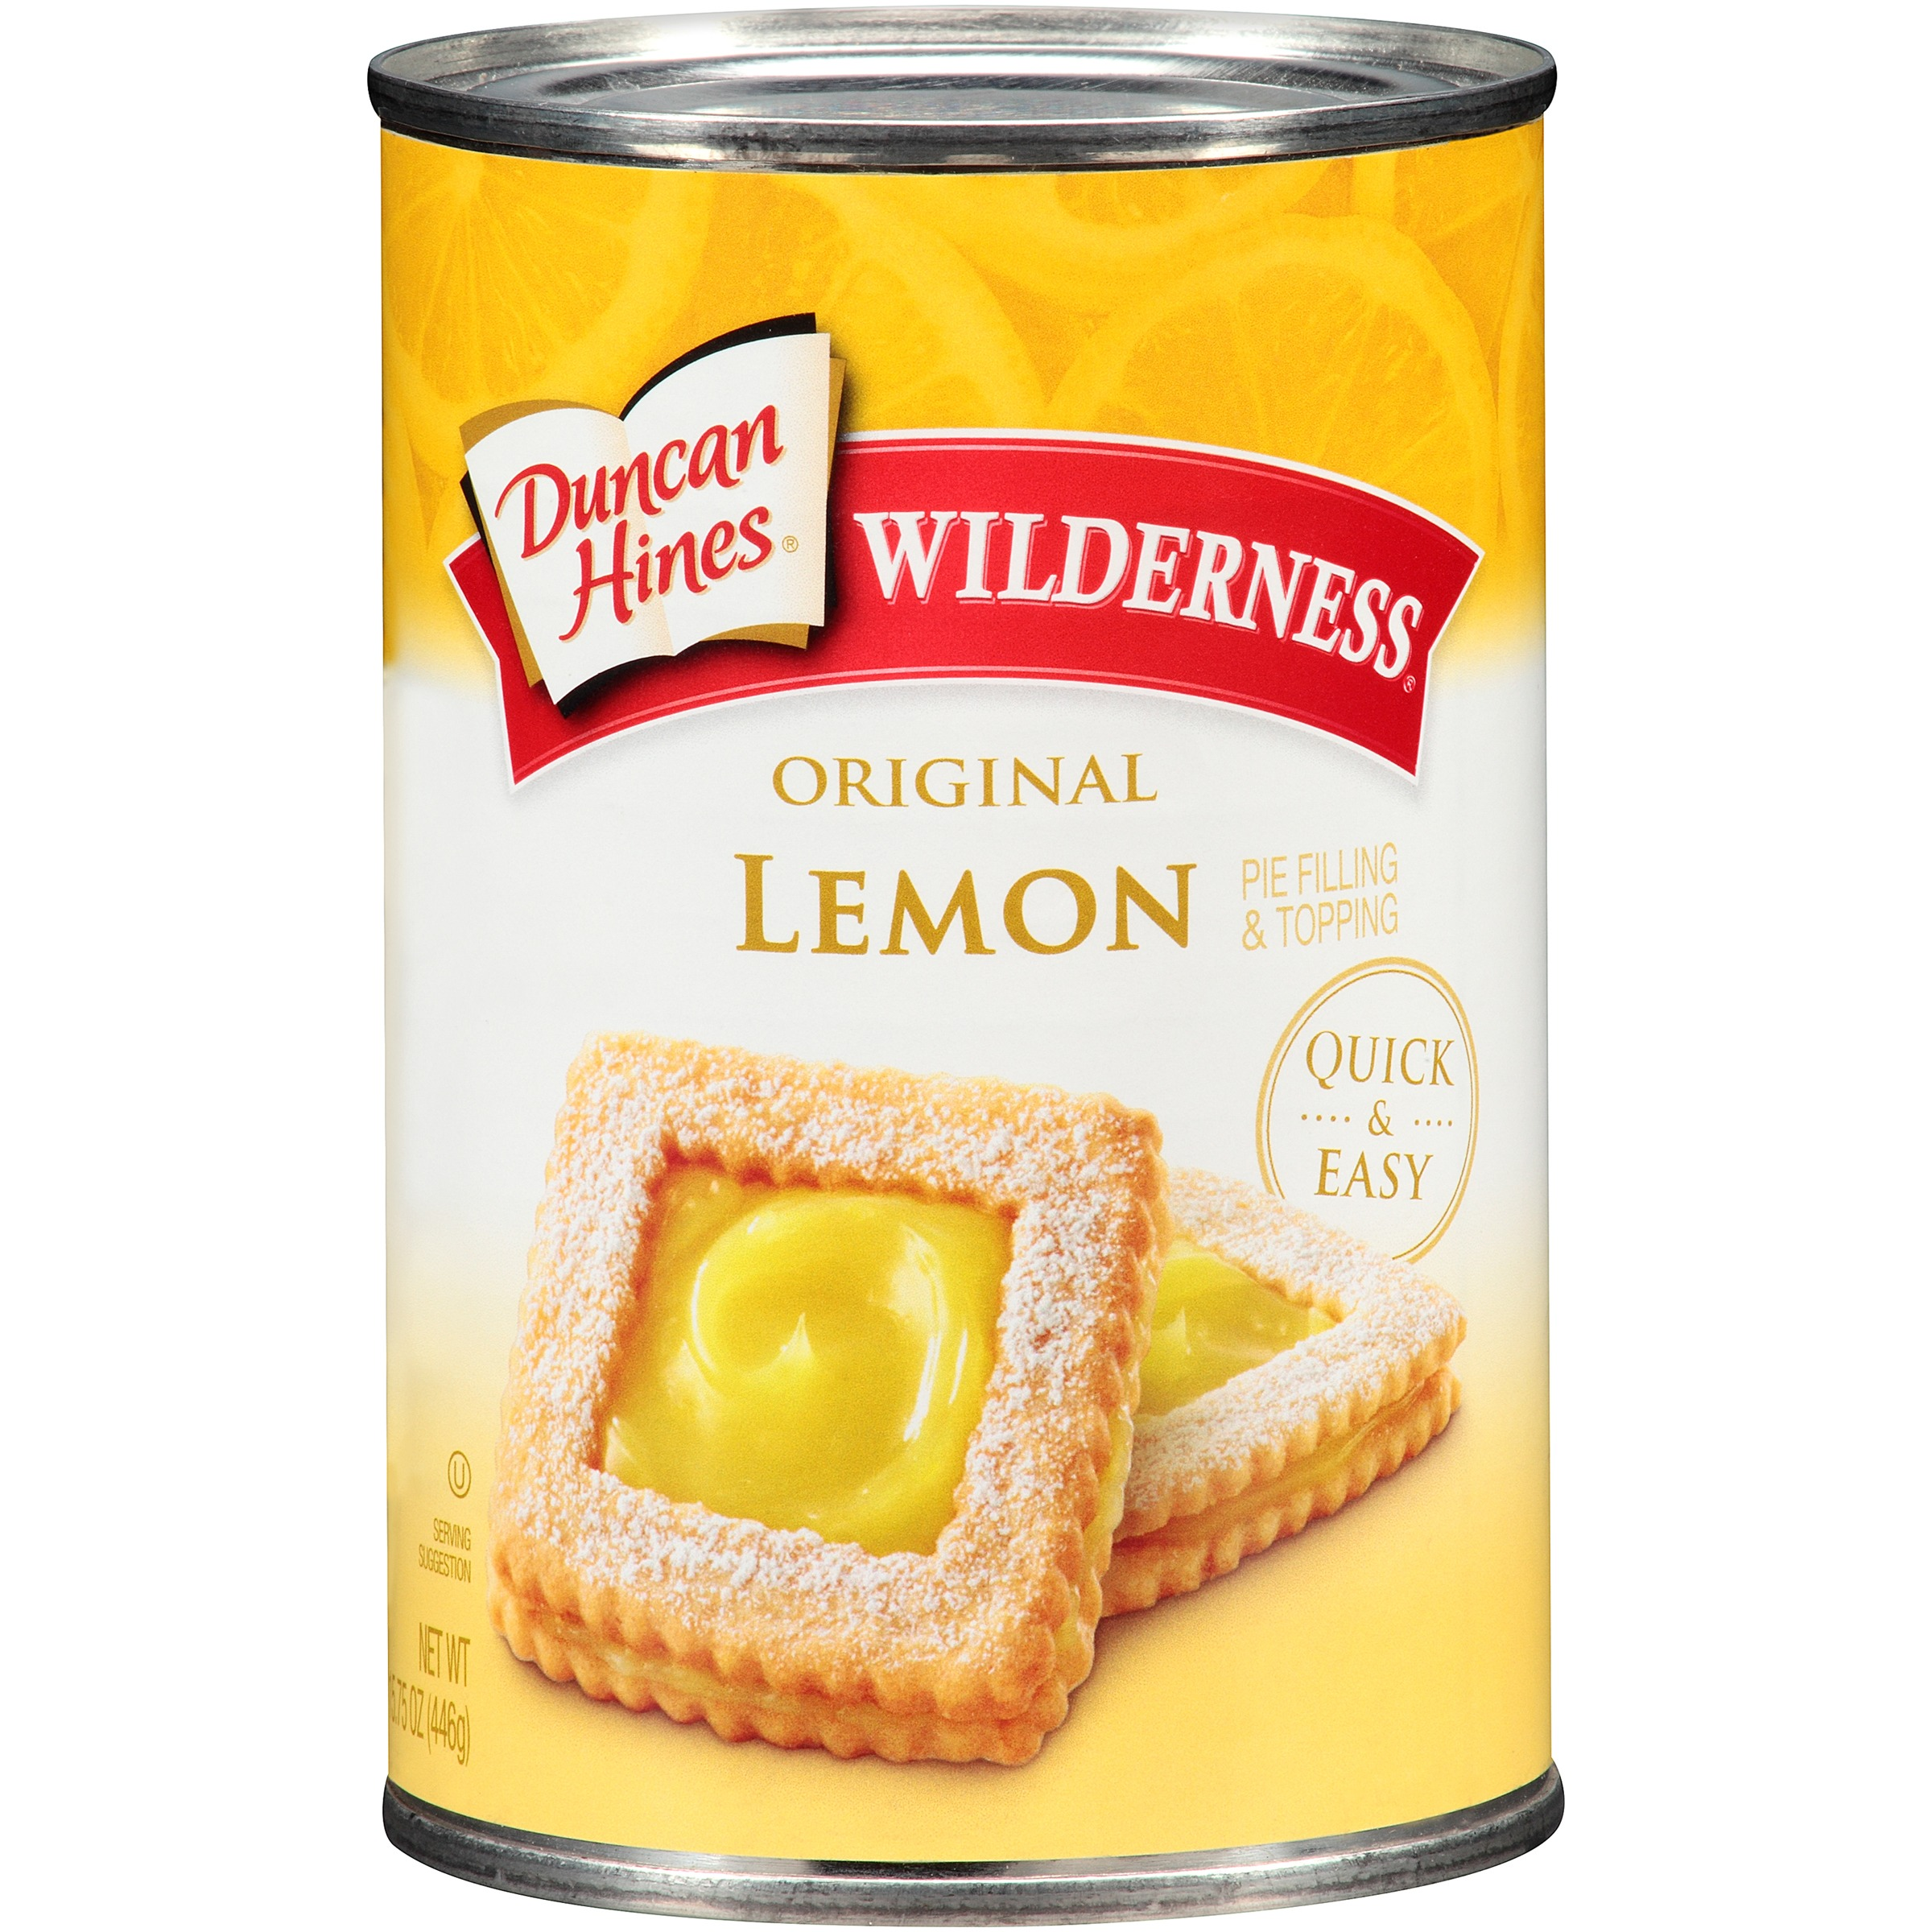 Duncan Hines® Wilderness® Original Lemon Pie Filling & Topping 15.75 oz. Can